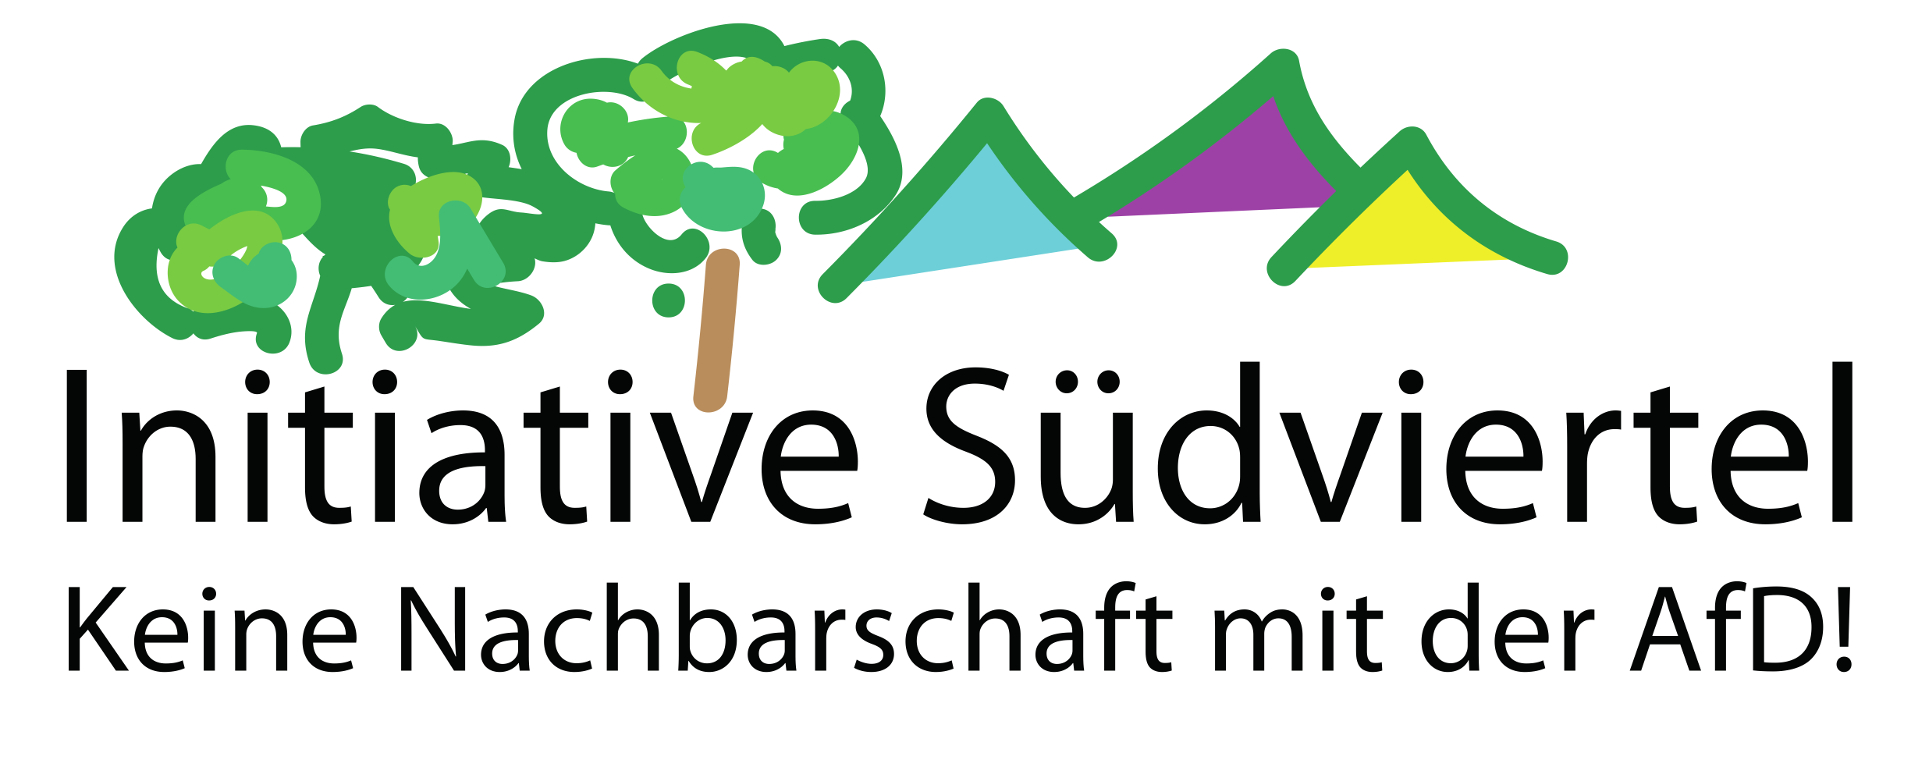 Initiative-Suedviertel